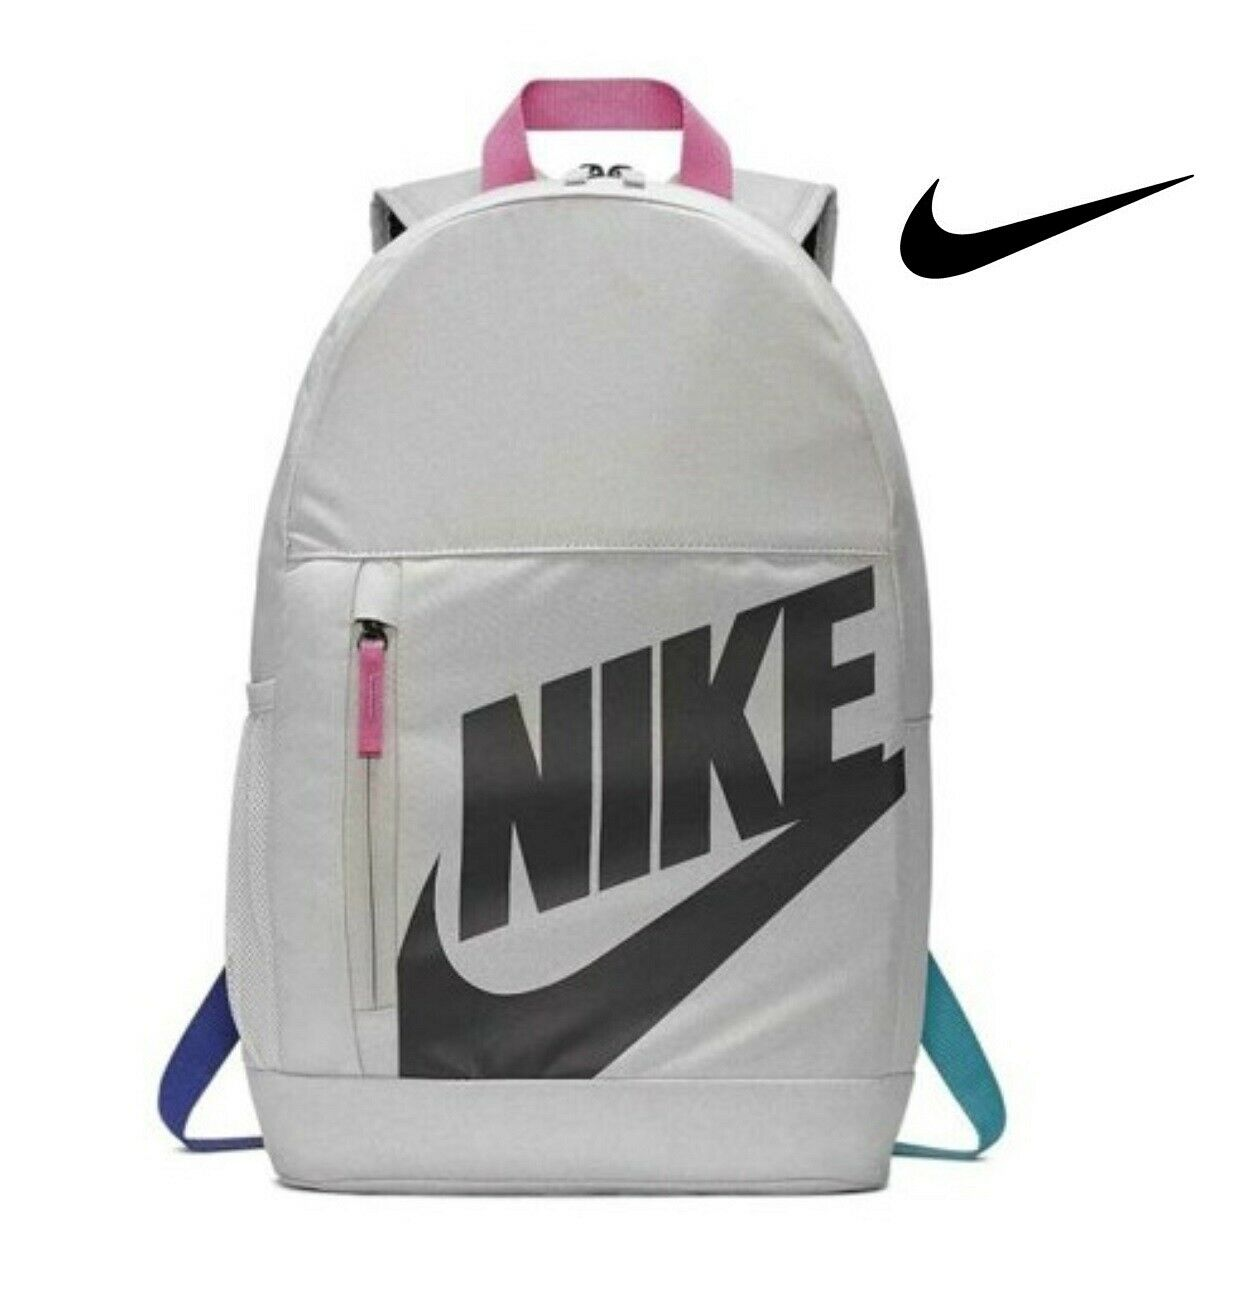 Nike Boys Elemental Backpack - Valley Sports UK